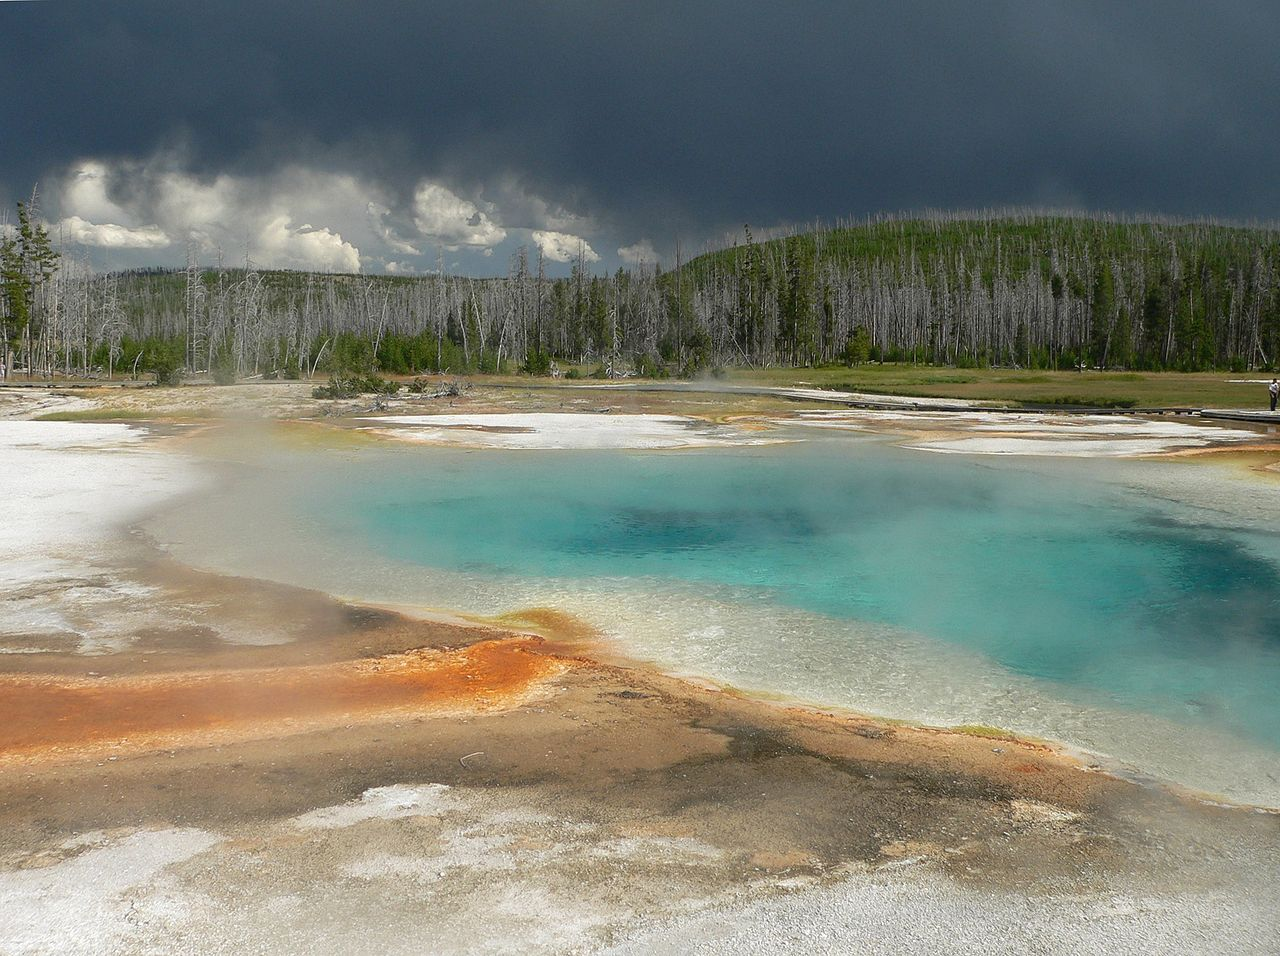 Park Narodowy Yellowstone, fot. David Monniaux CC by-sa 3.0